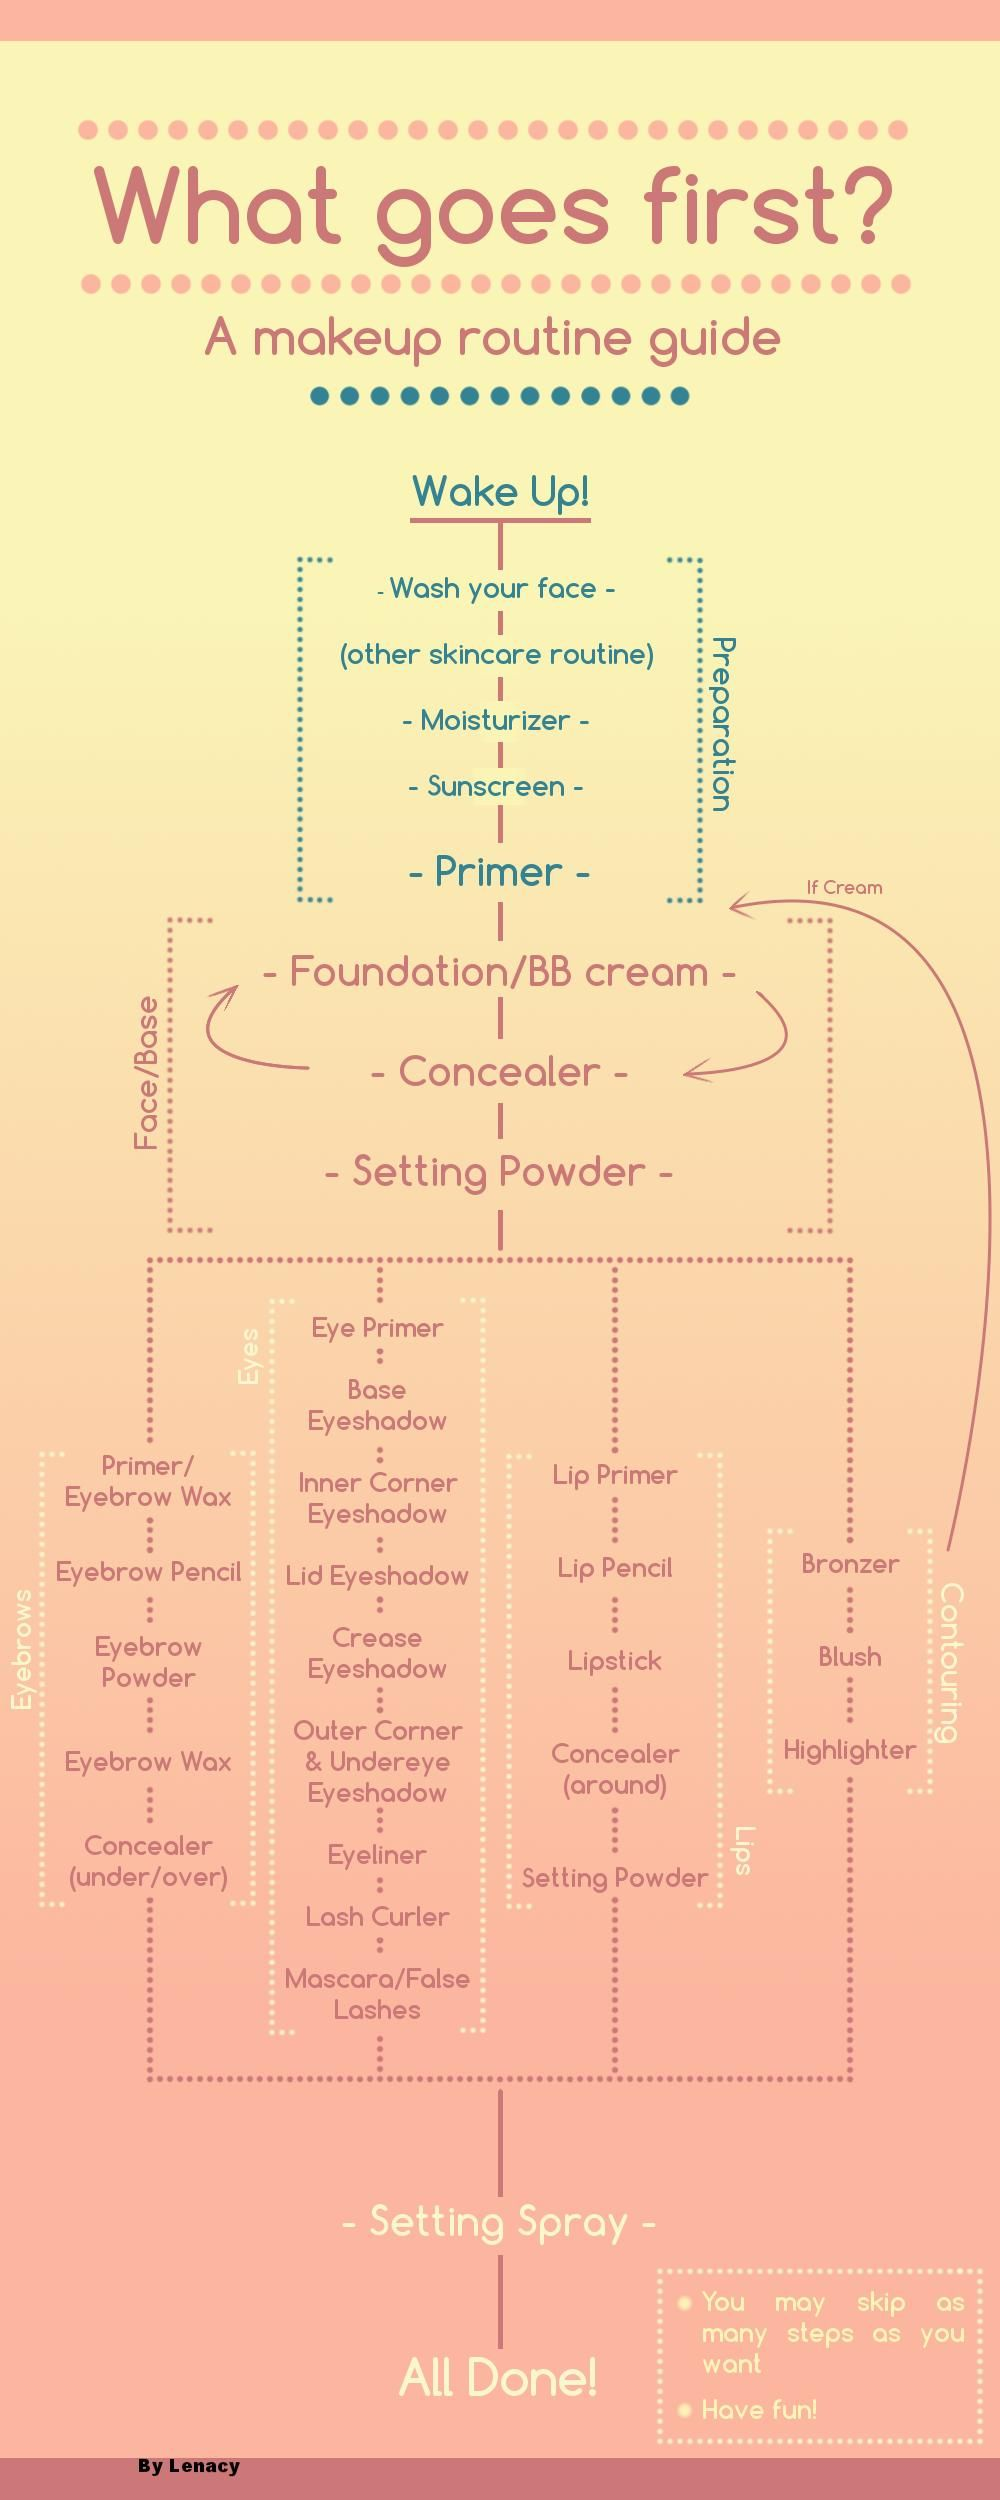 medium resolution of incredibly useful makeup order flowchart by u lenacy on reddit for those who aren t sure what goes first